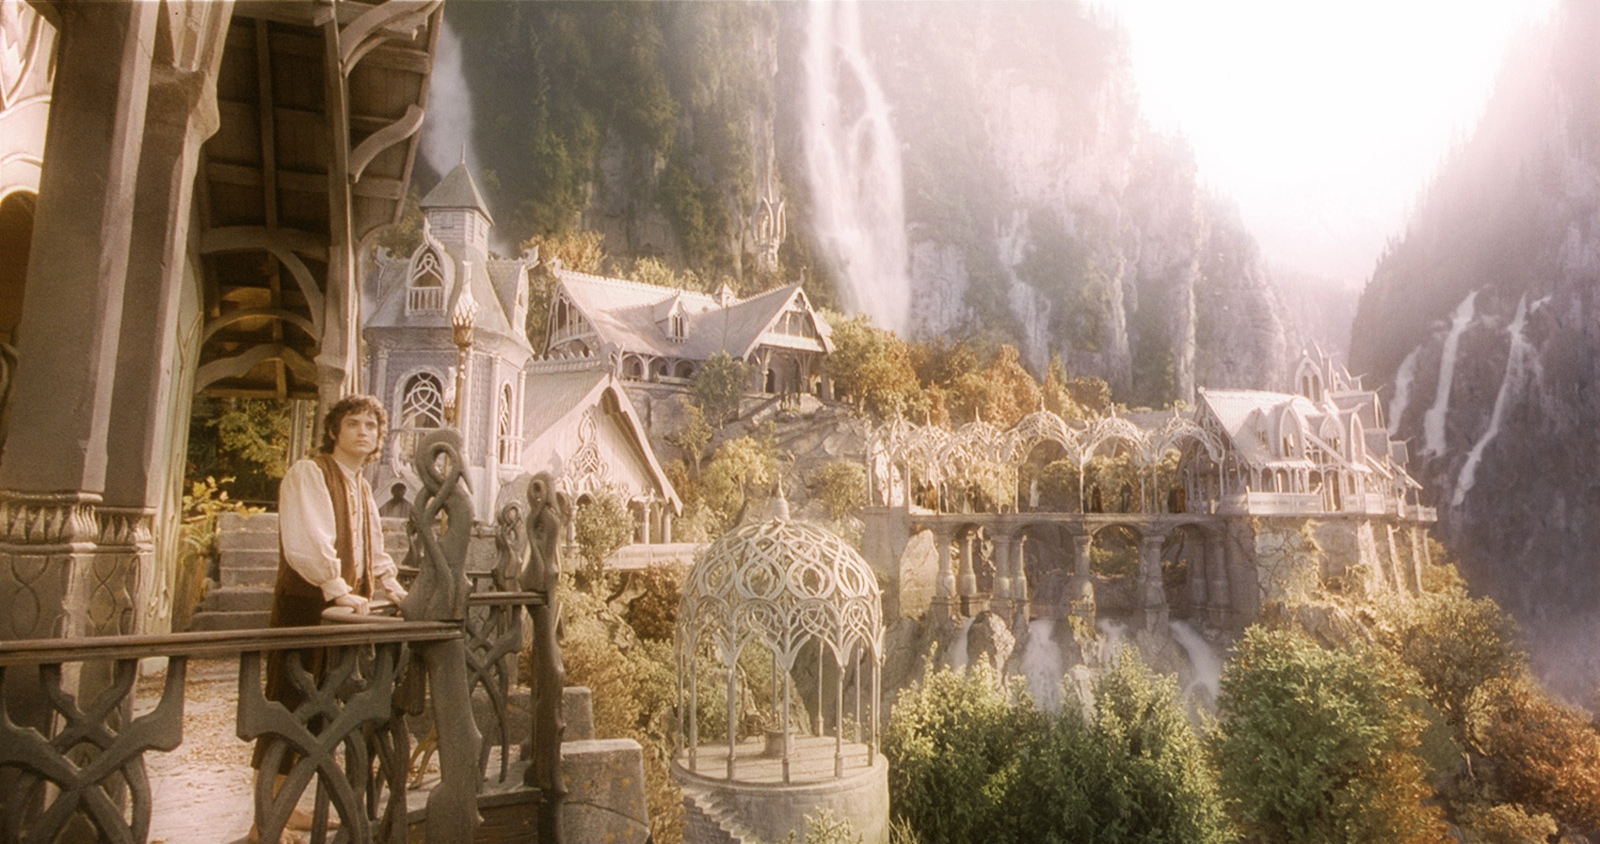 Places of Fancy: Where Is Rivendell in 'The Lord of the Rings'?